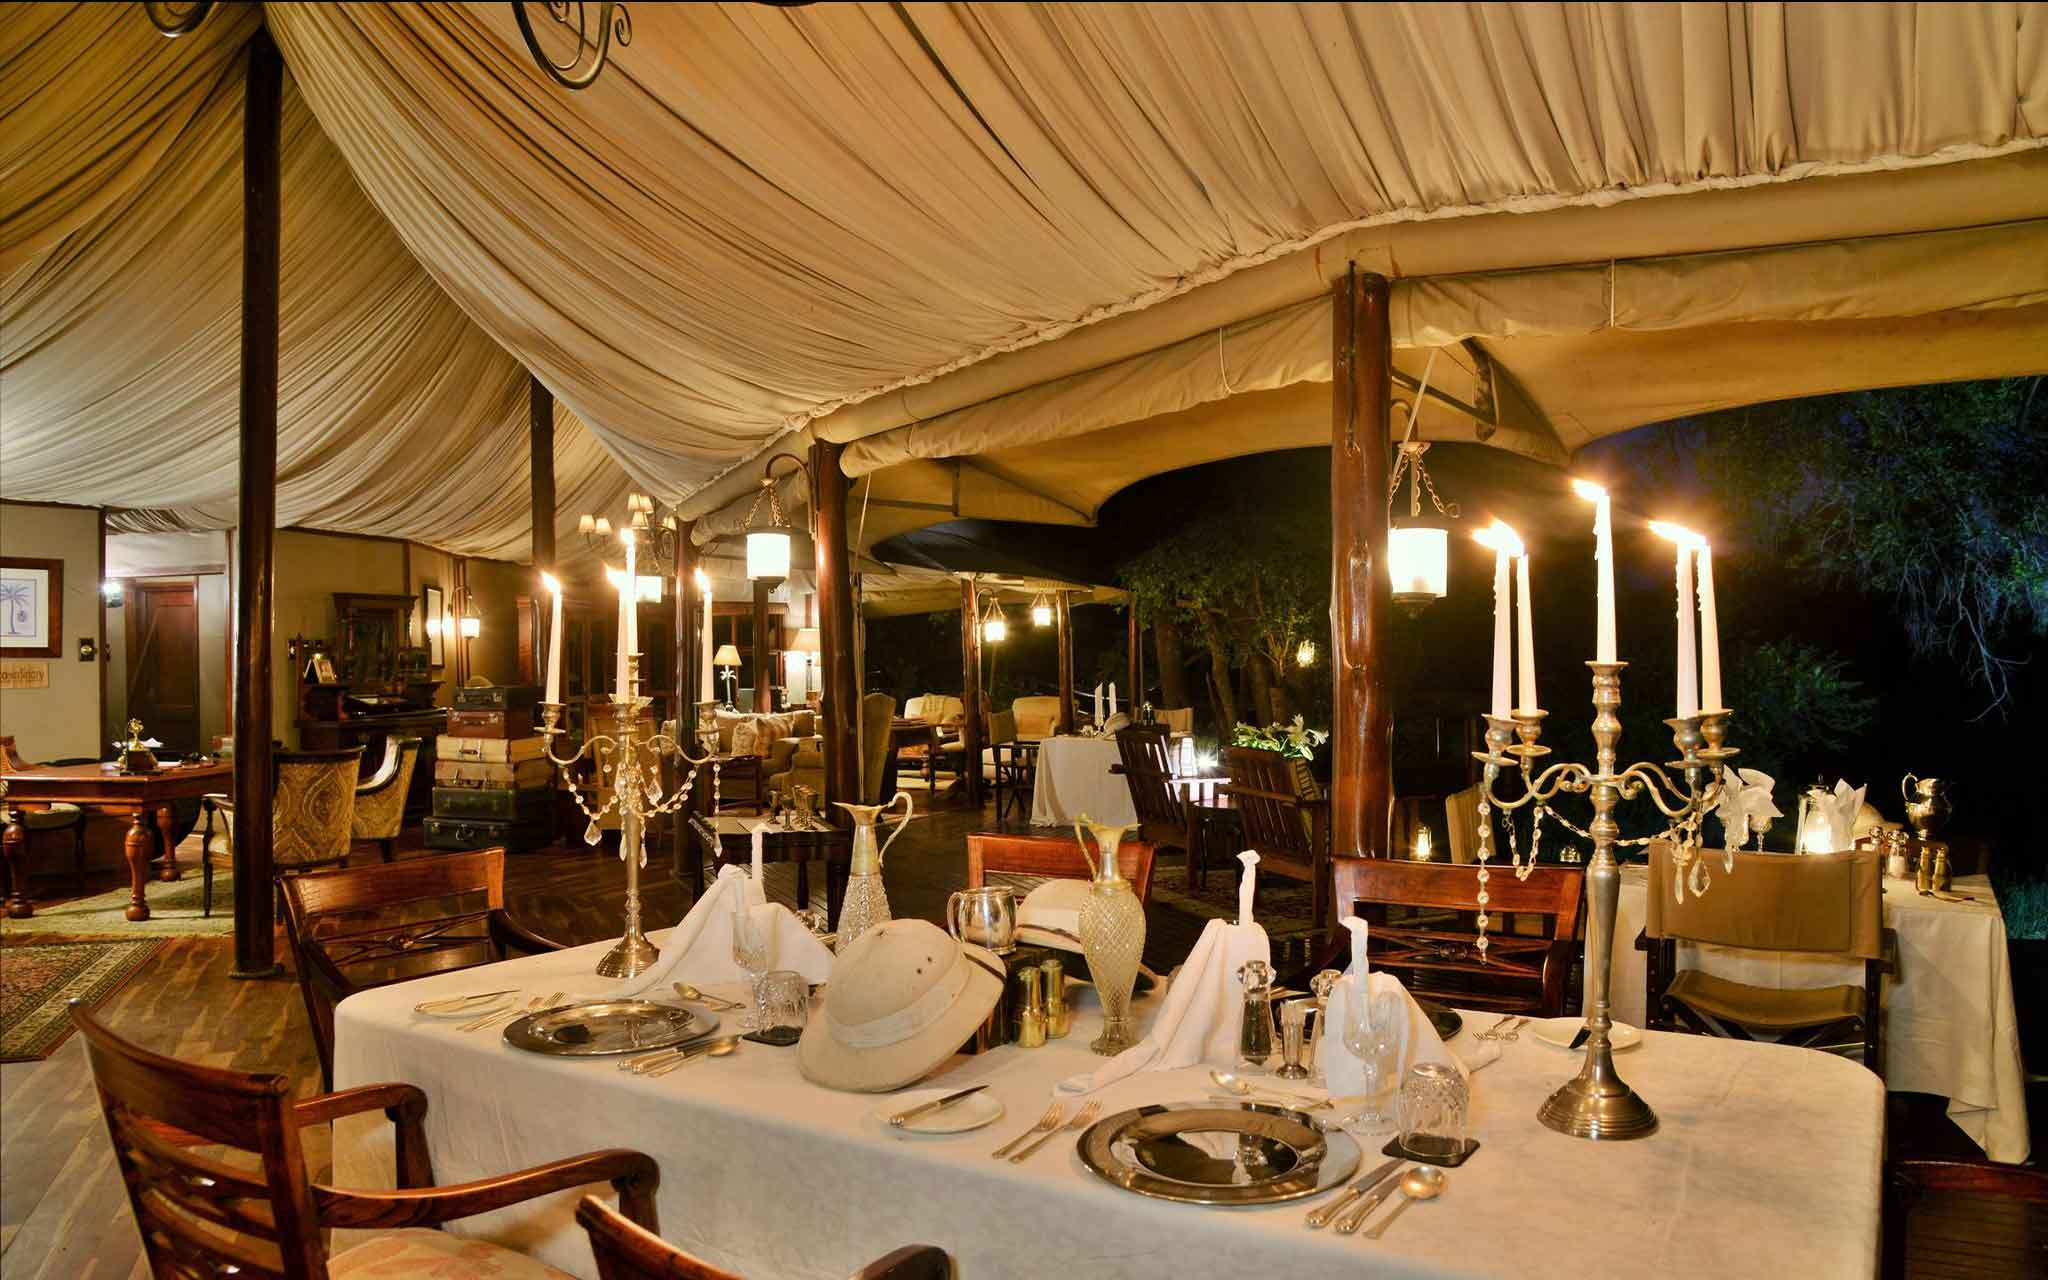 4. Hamiltons Tented Camp